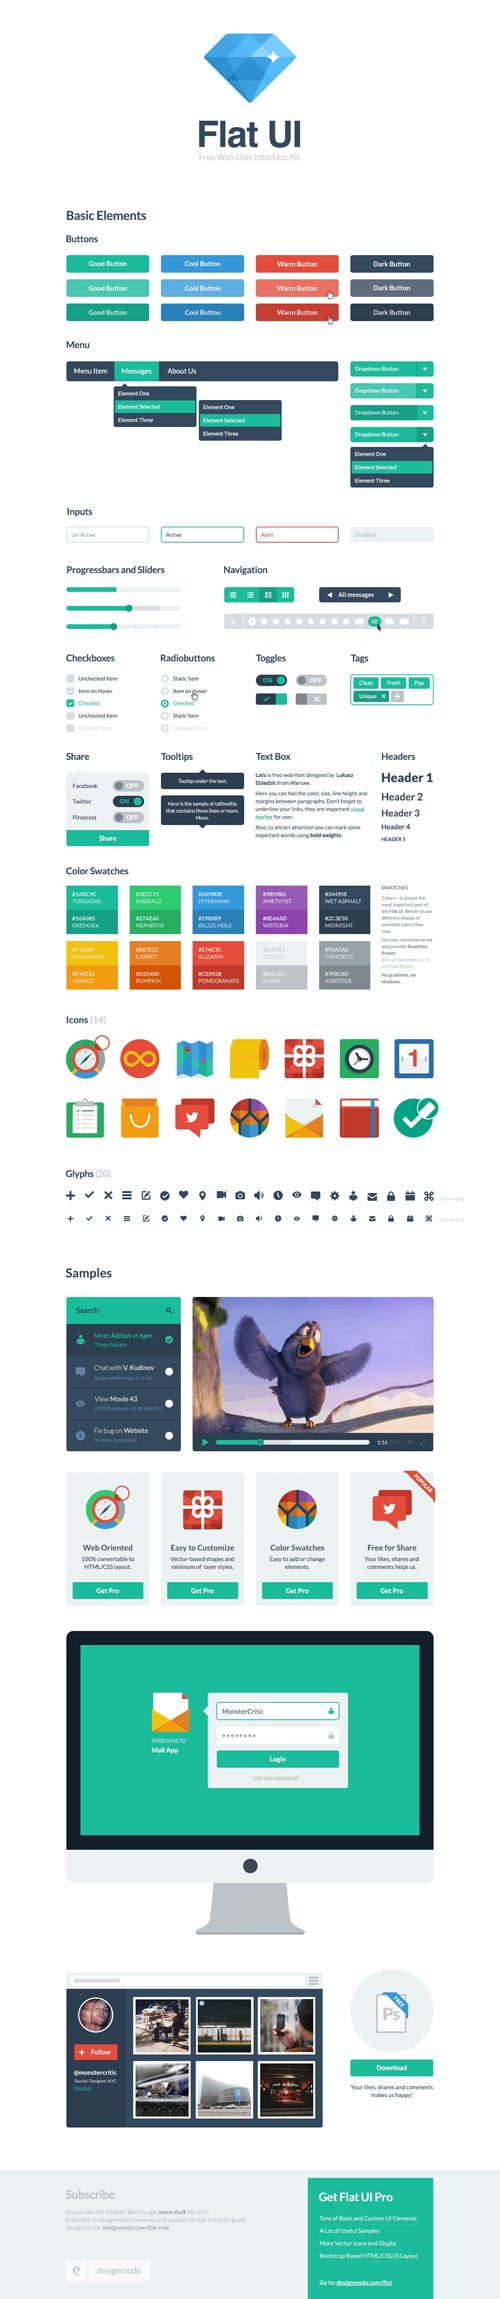 Flat UI - Framework and Bootstrap Theme Design [PSD/HTML]